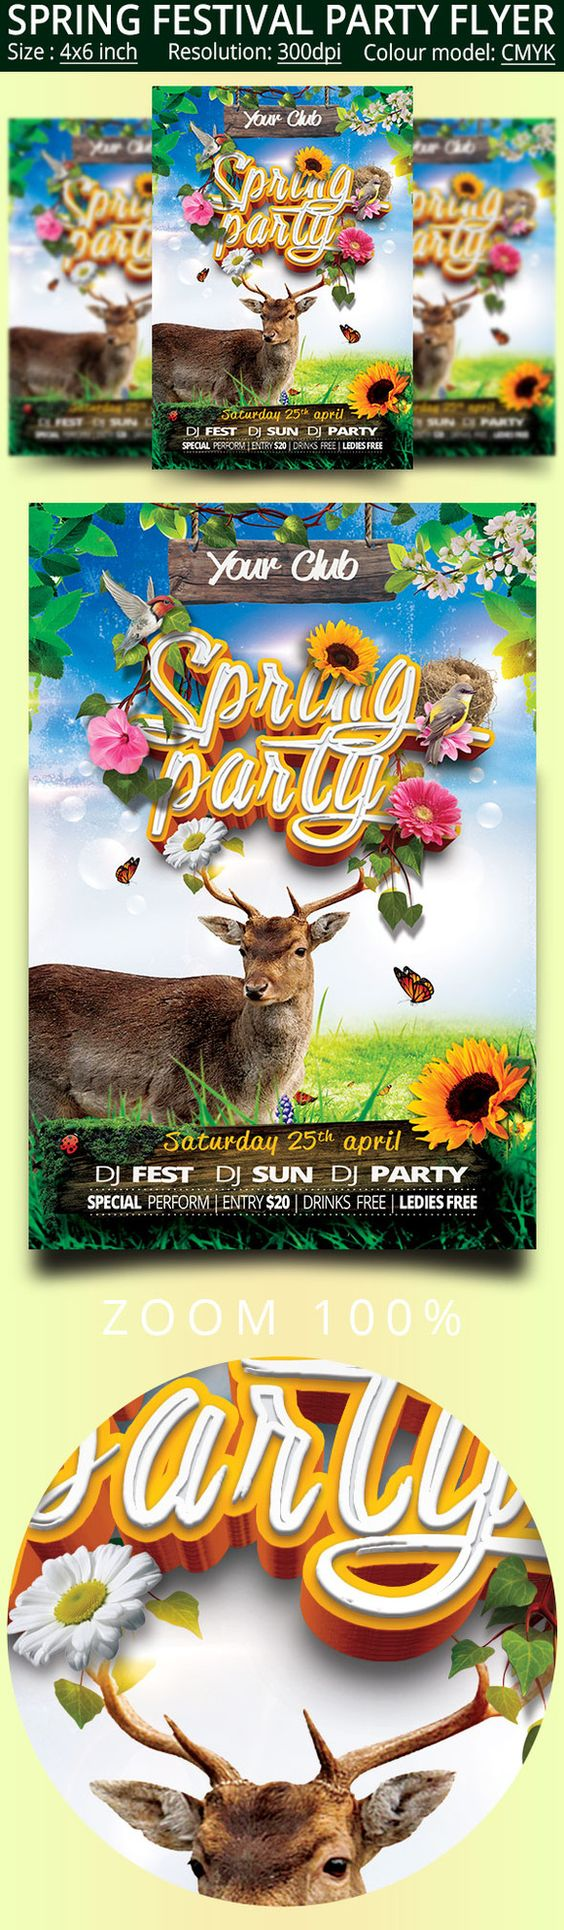 spring festival party flyer festival party party flyer and flyers templates flyers flyers ideas festival party spring festival design flyers party flyer creativemarket festivals